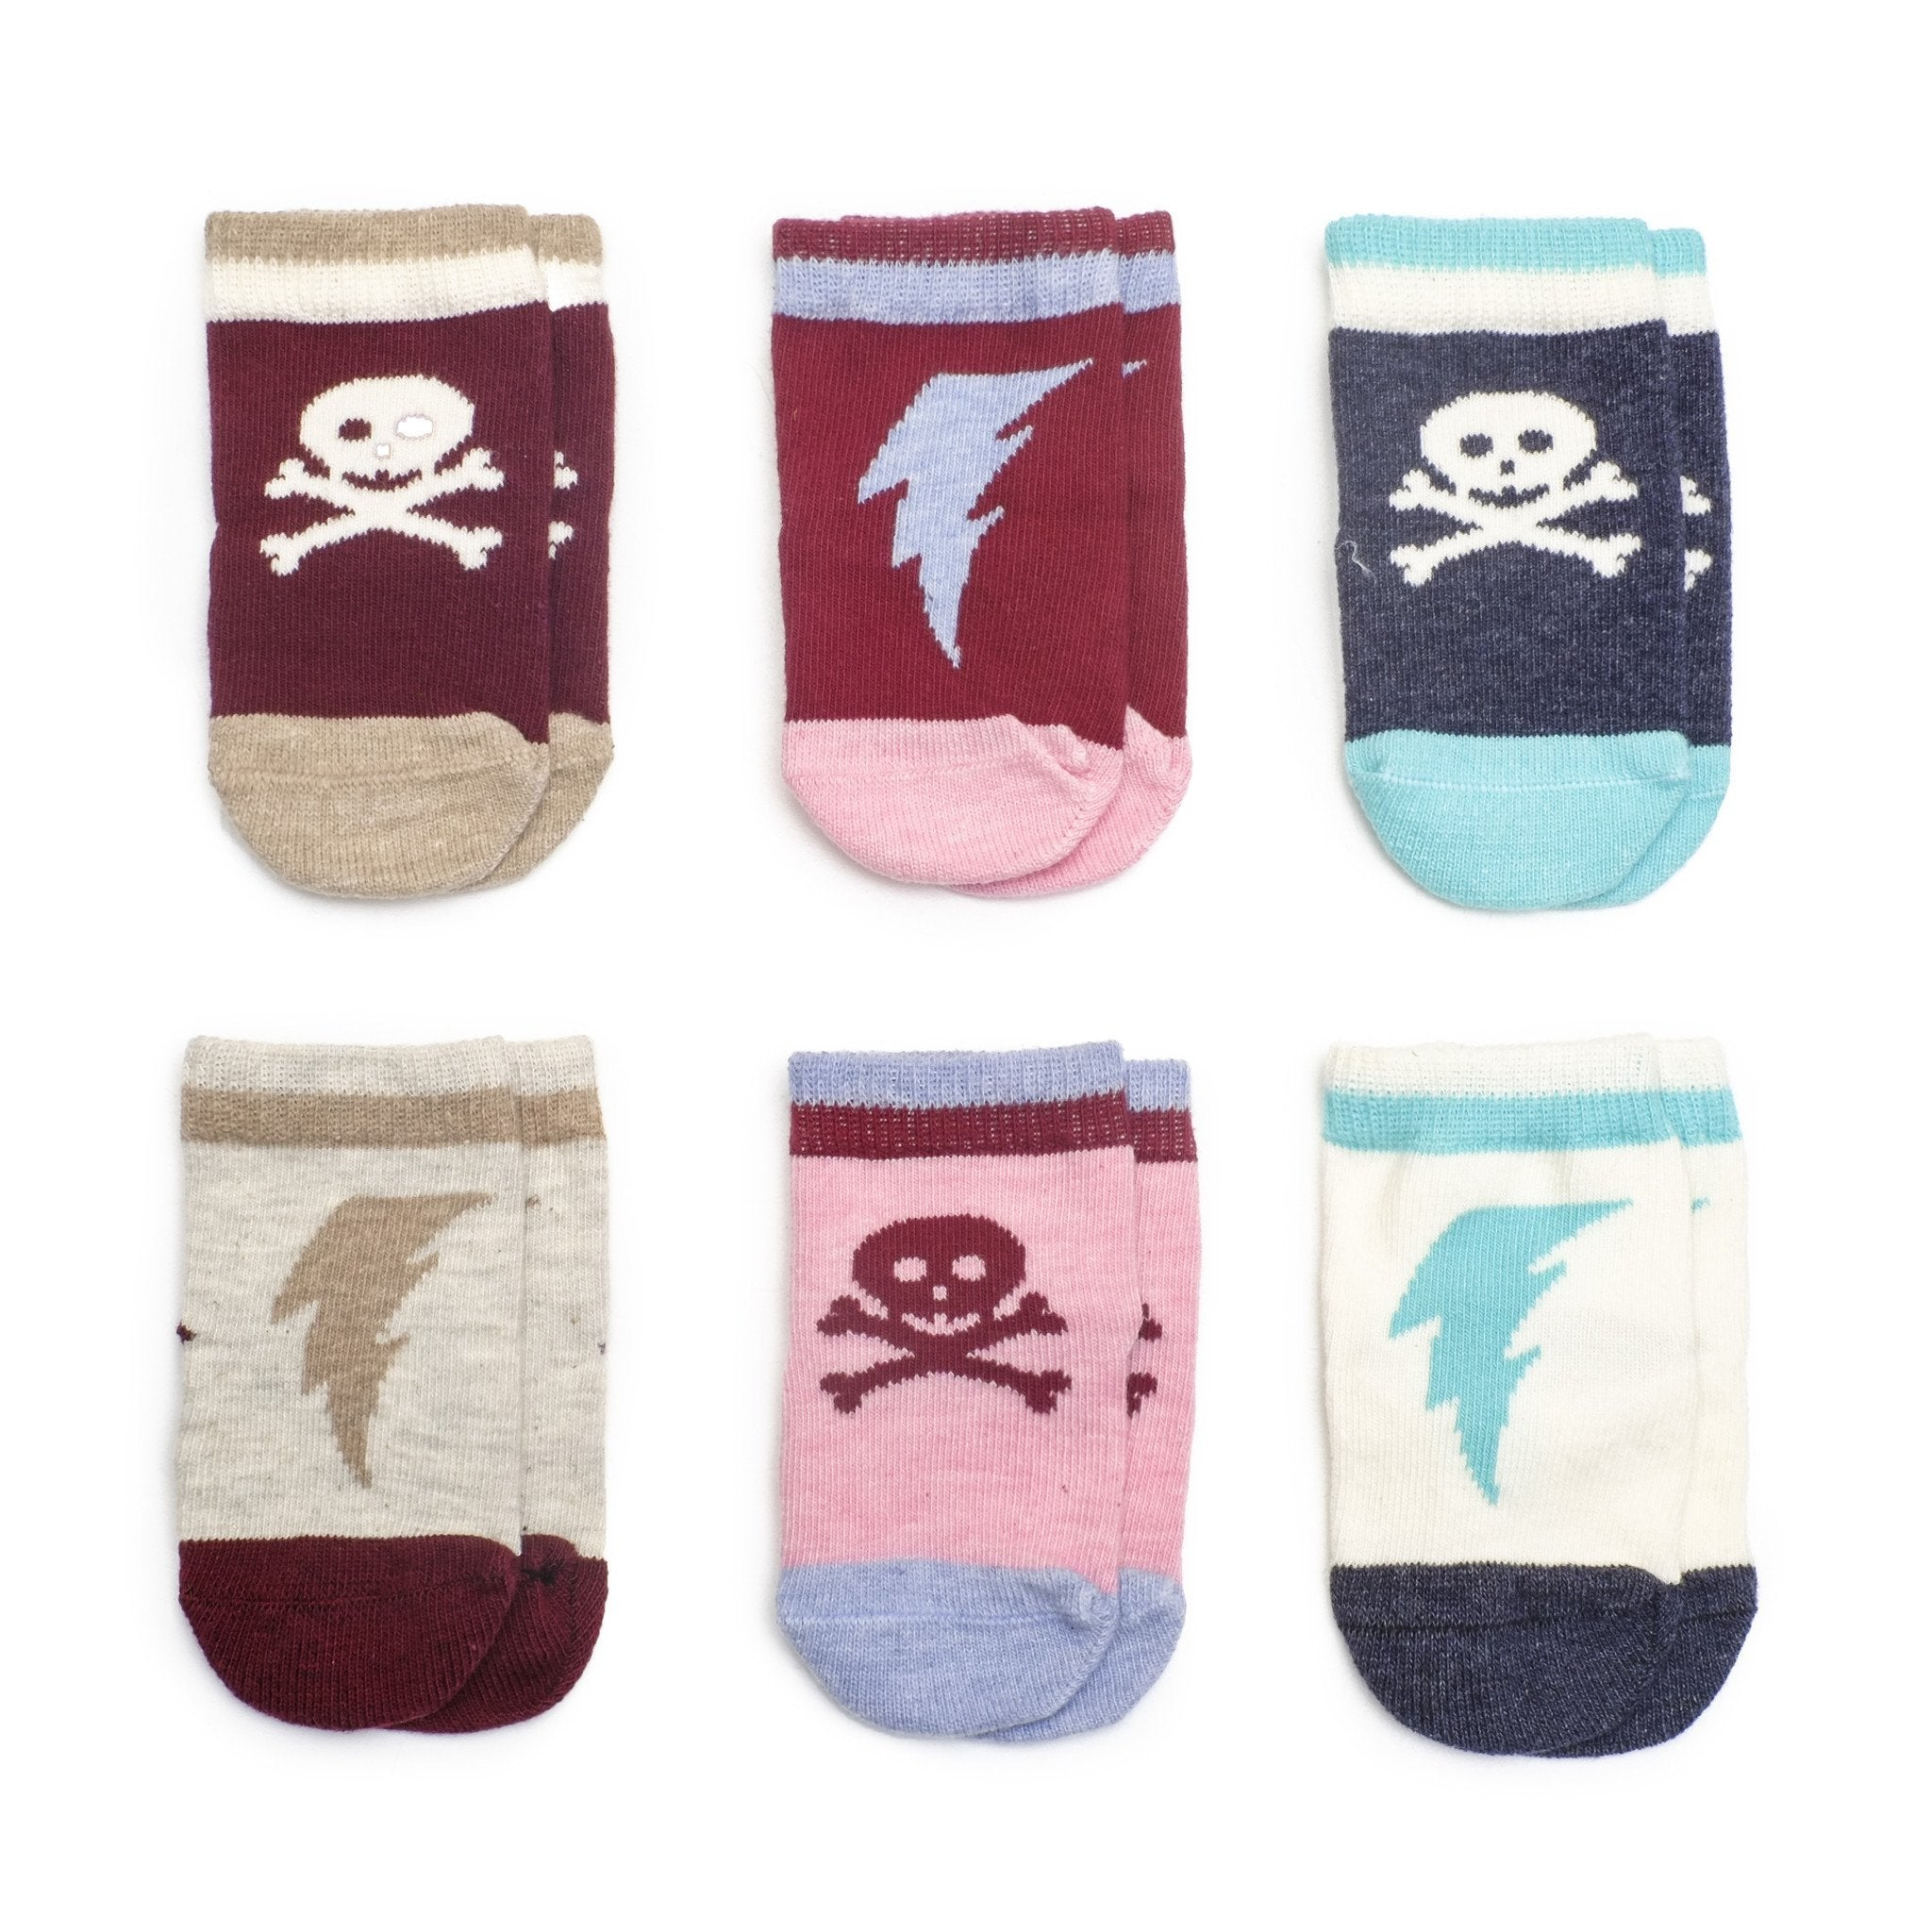 Super Villains Girl - Multi - Baby Socks | Etiquette Clothiers Global Official